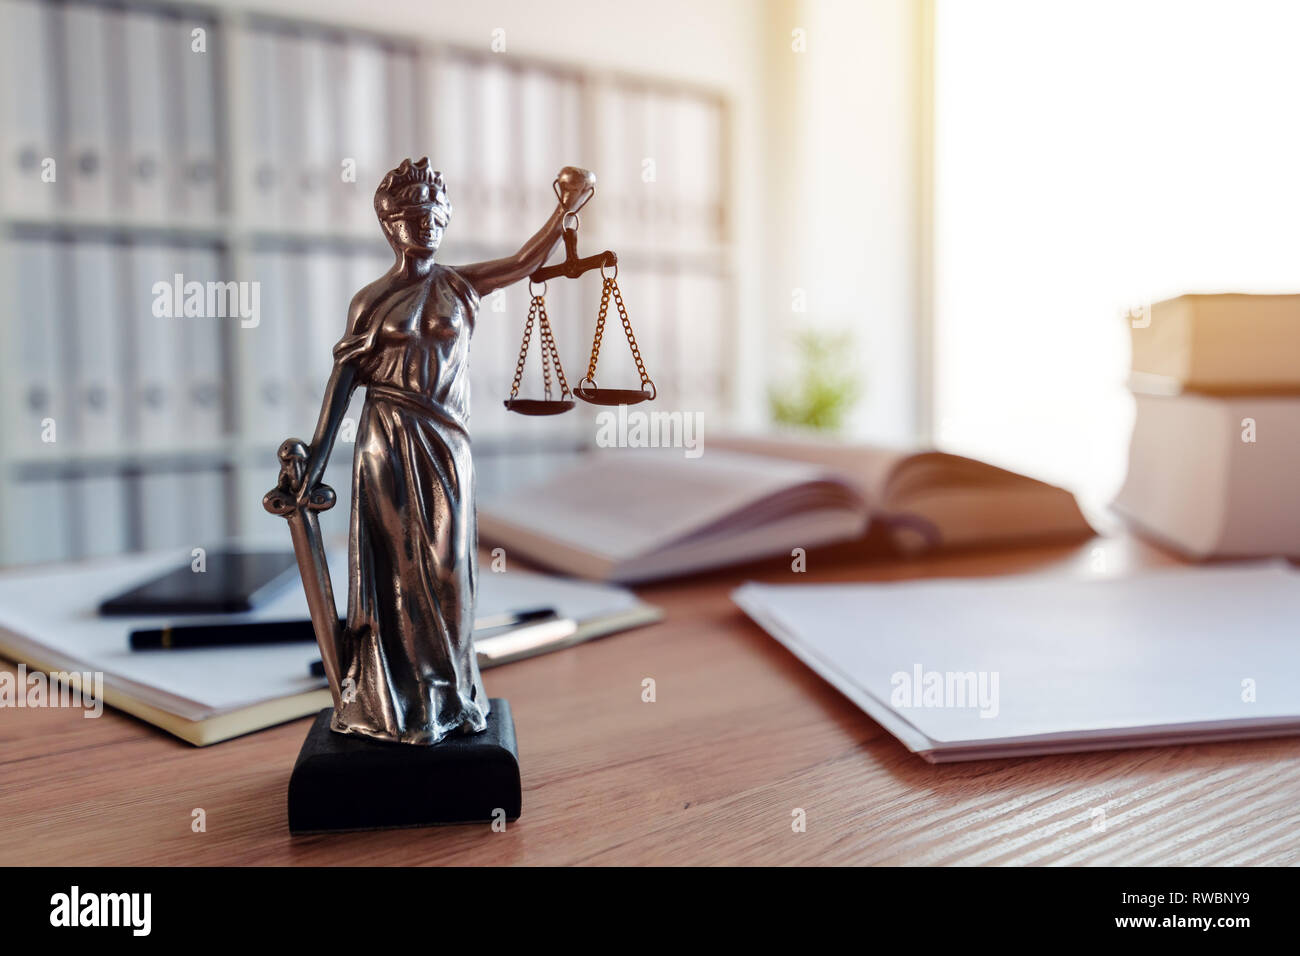 Lady Justice statue in law firm attorney office, blindfolded Justitia with balance scales and sword is personification of moral force in judicial syst - Stock Image